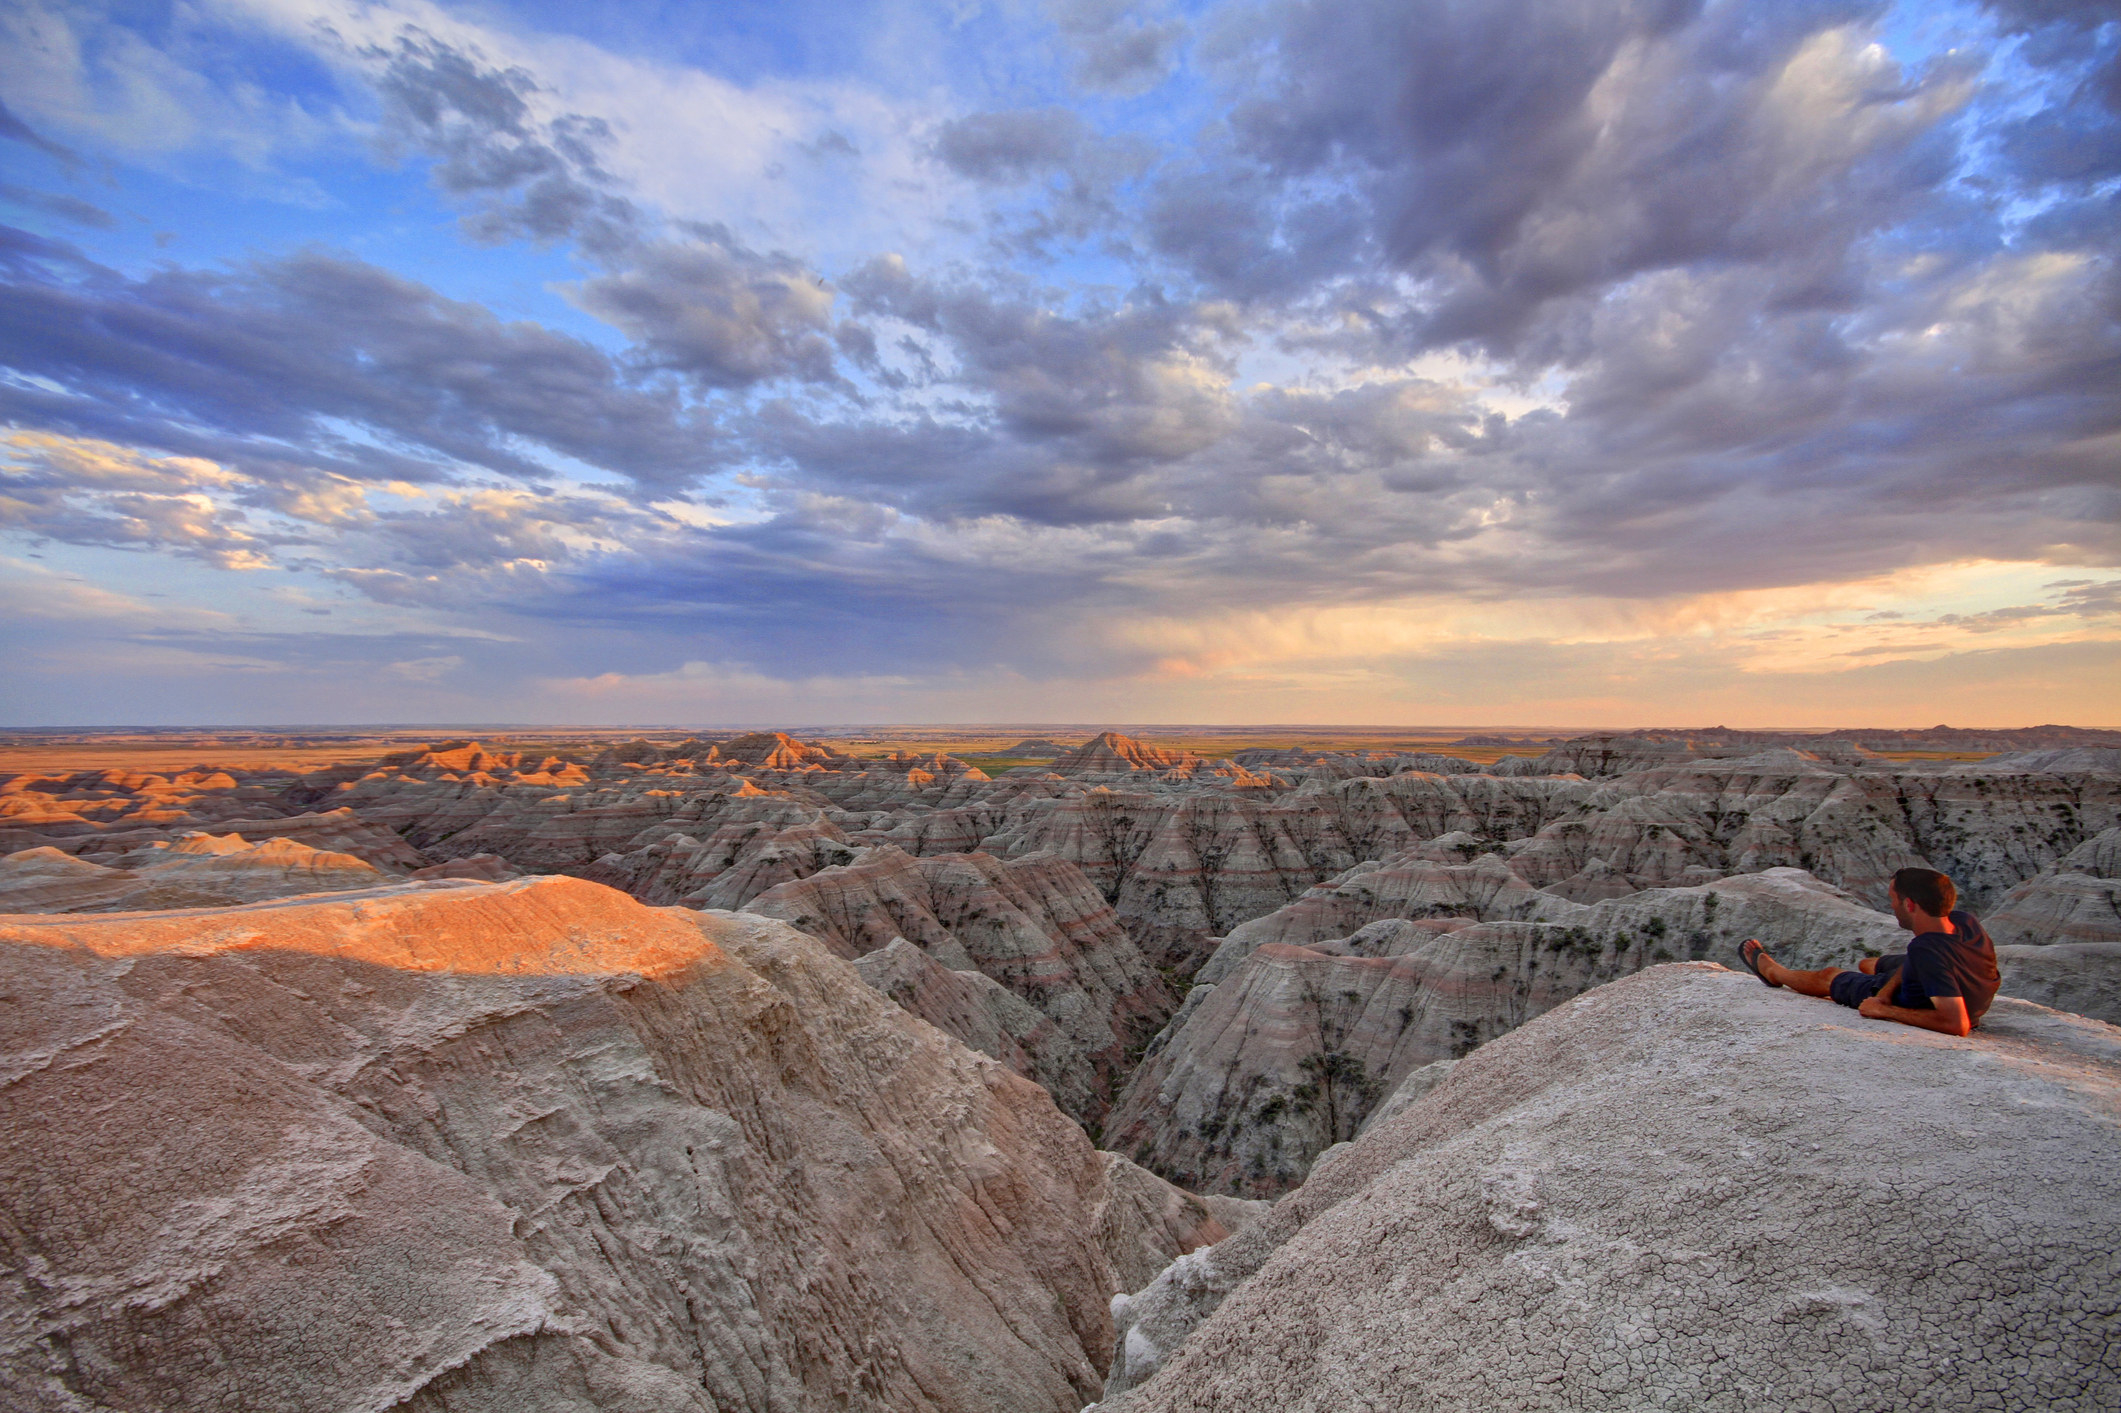 A man reclines on a rock overlooking rocky badlands during sunset